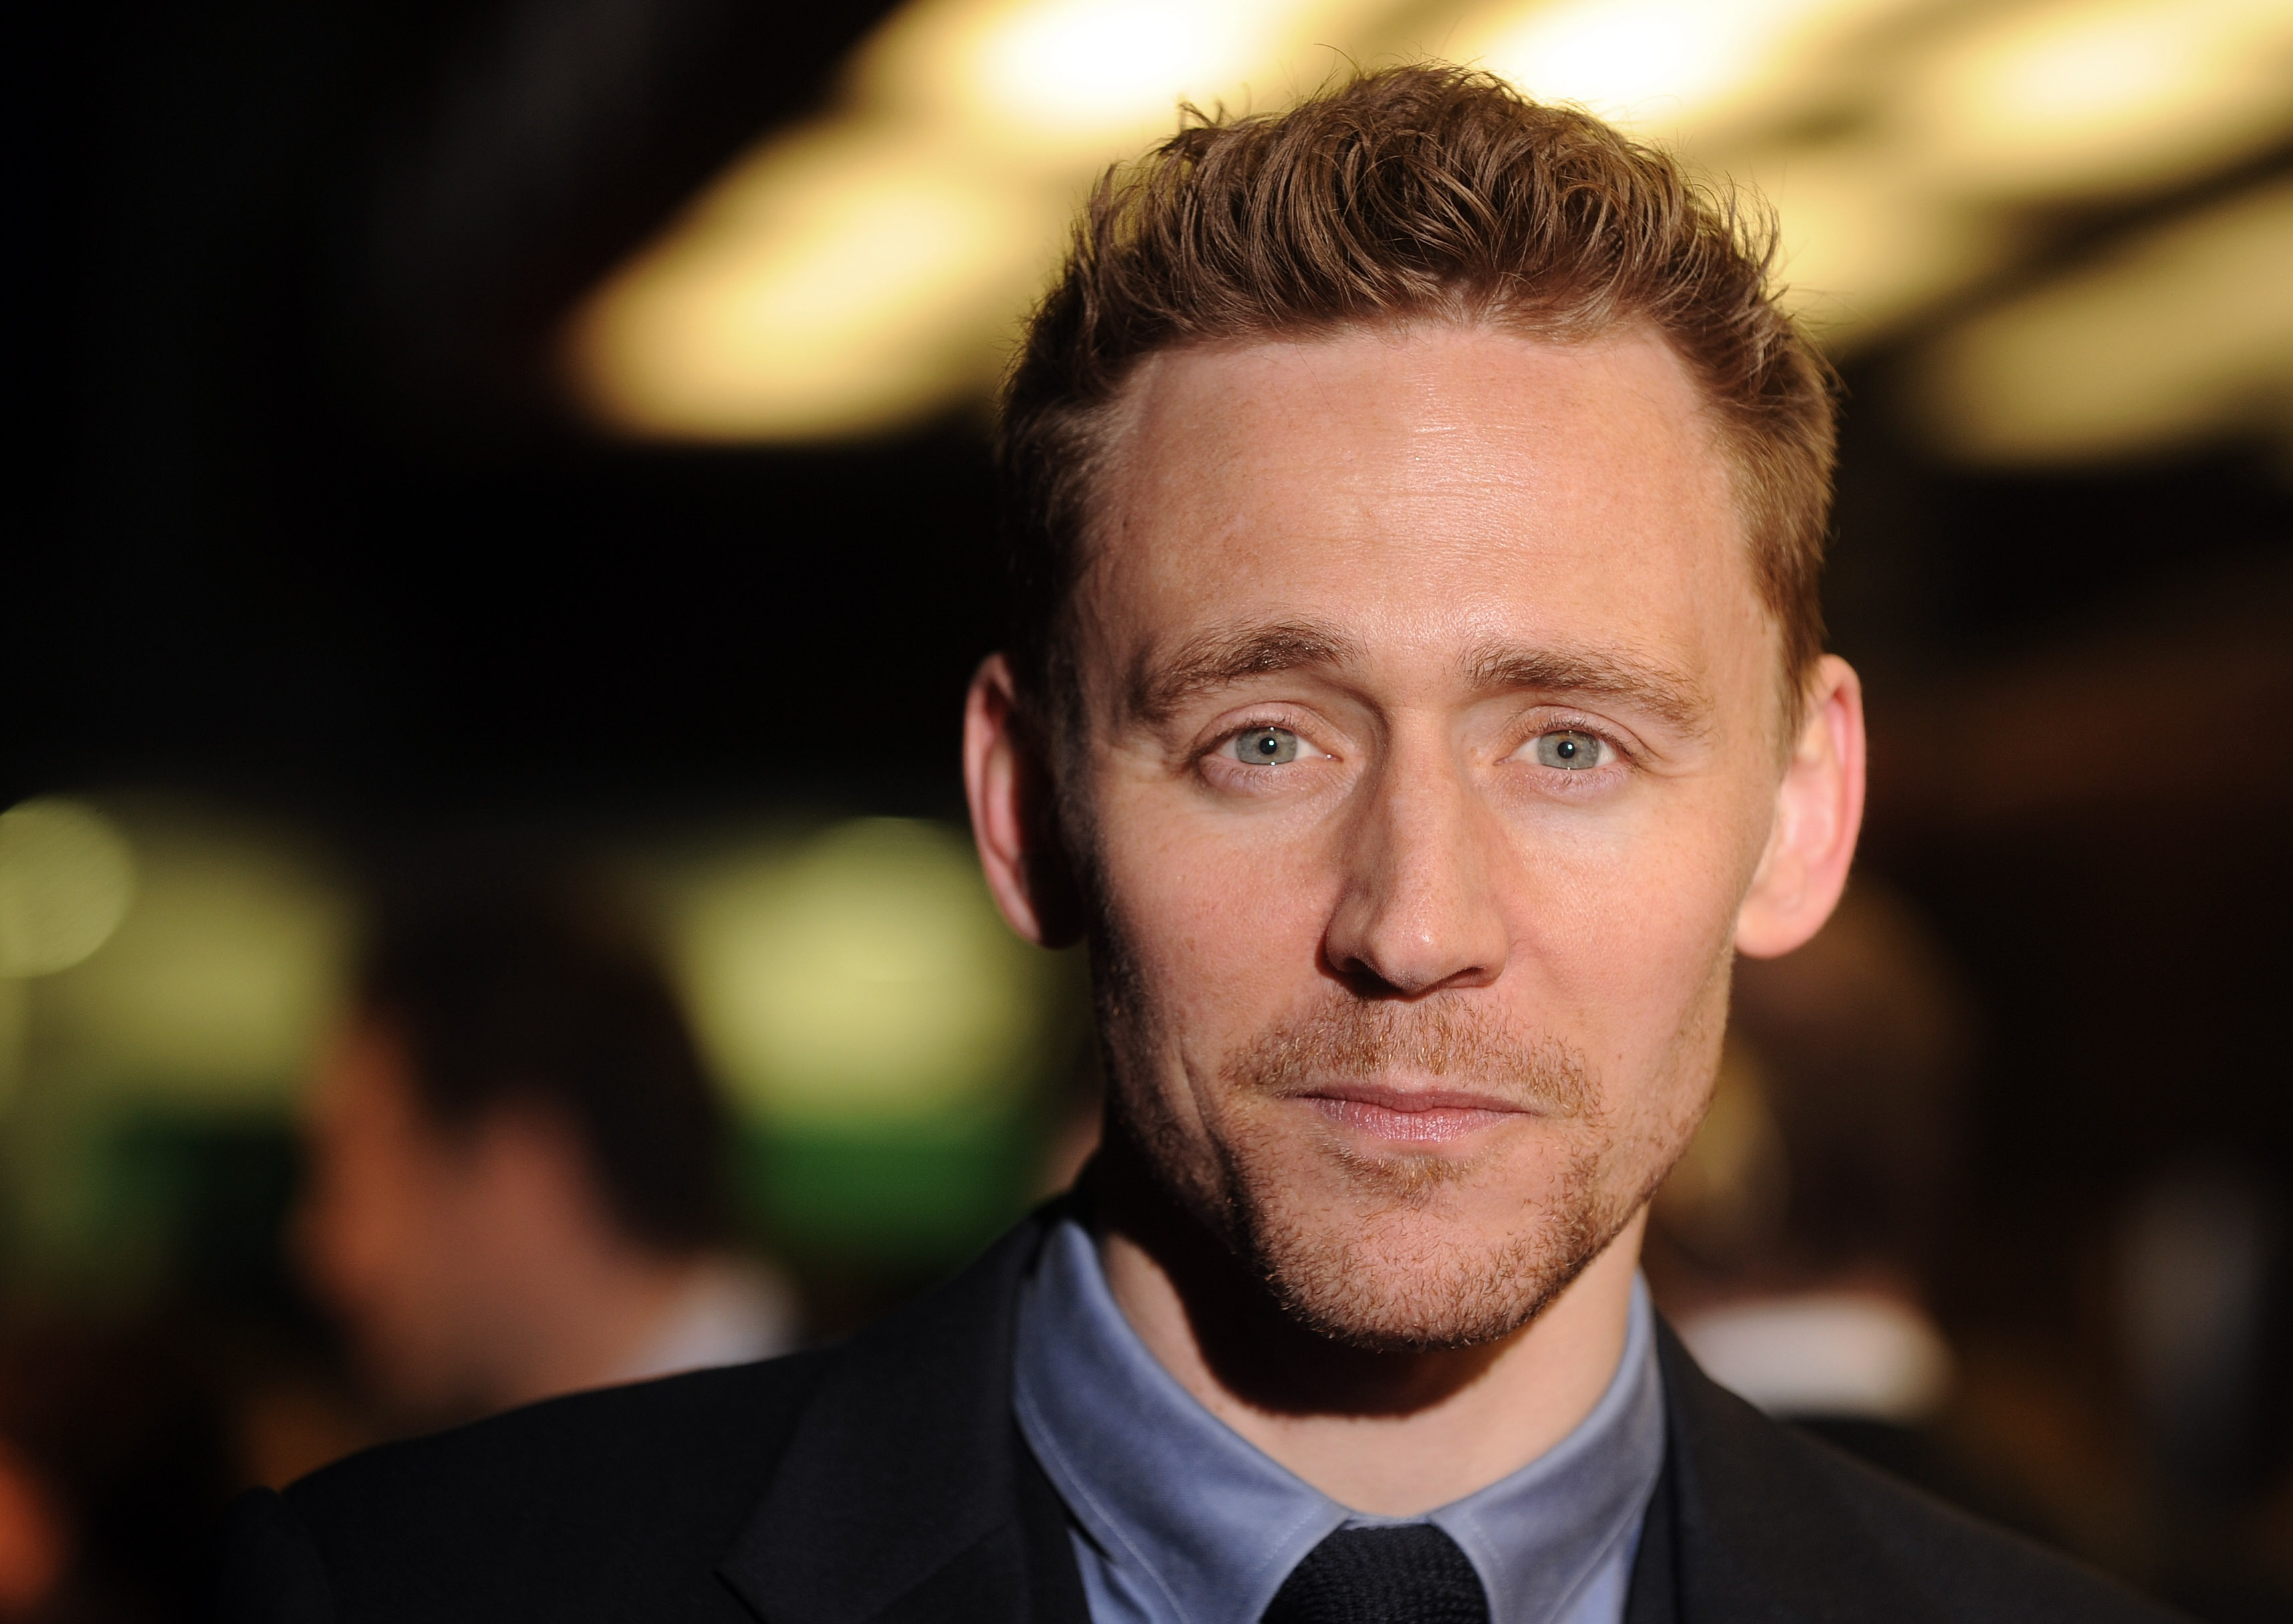 What Are Tom Hiddlestons Favorite Films Hes Got A Great Selection